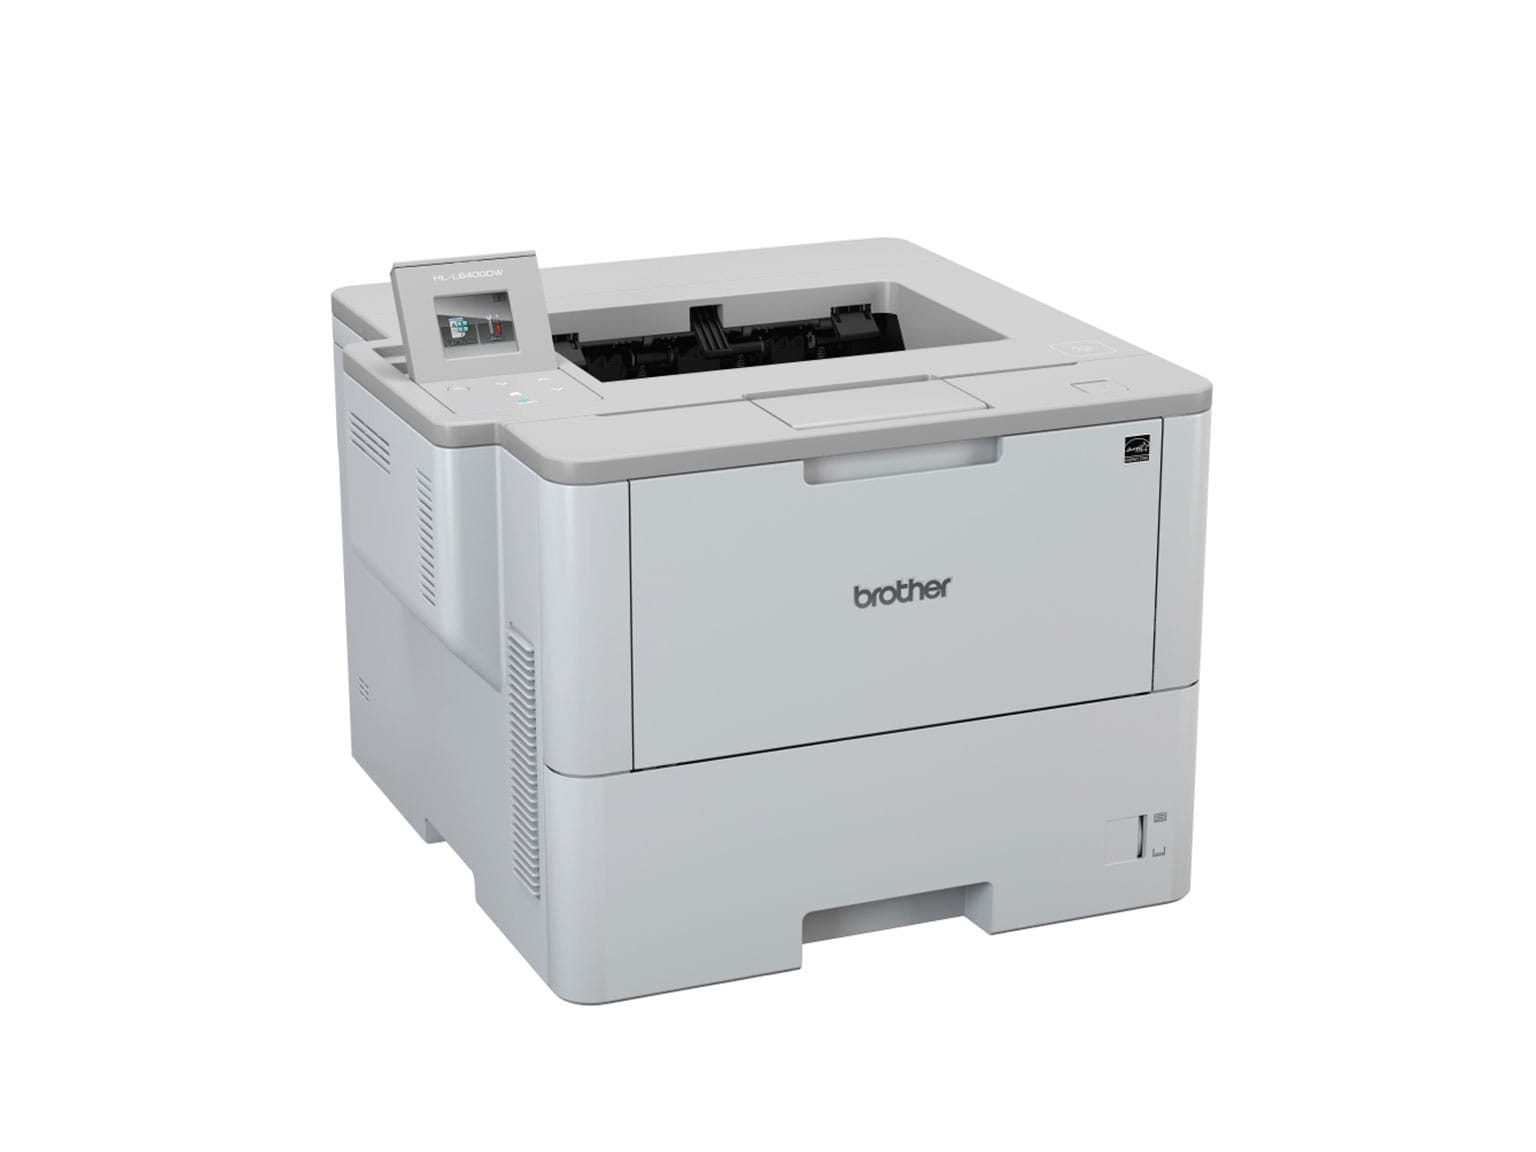 Brother mono laser printer 3/4 view